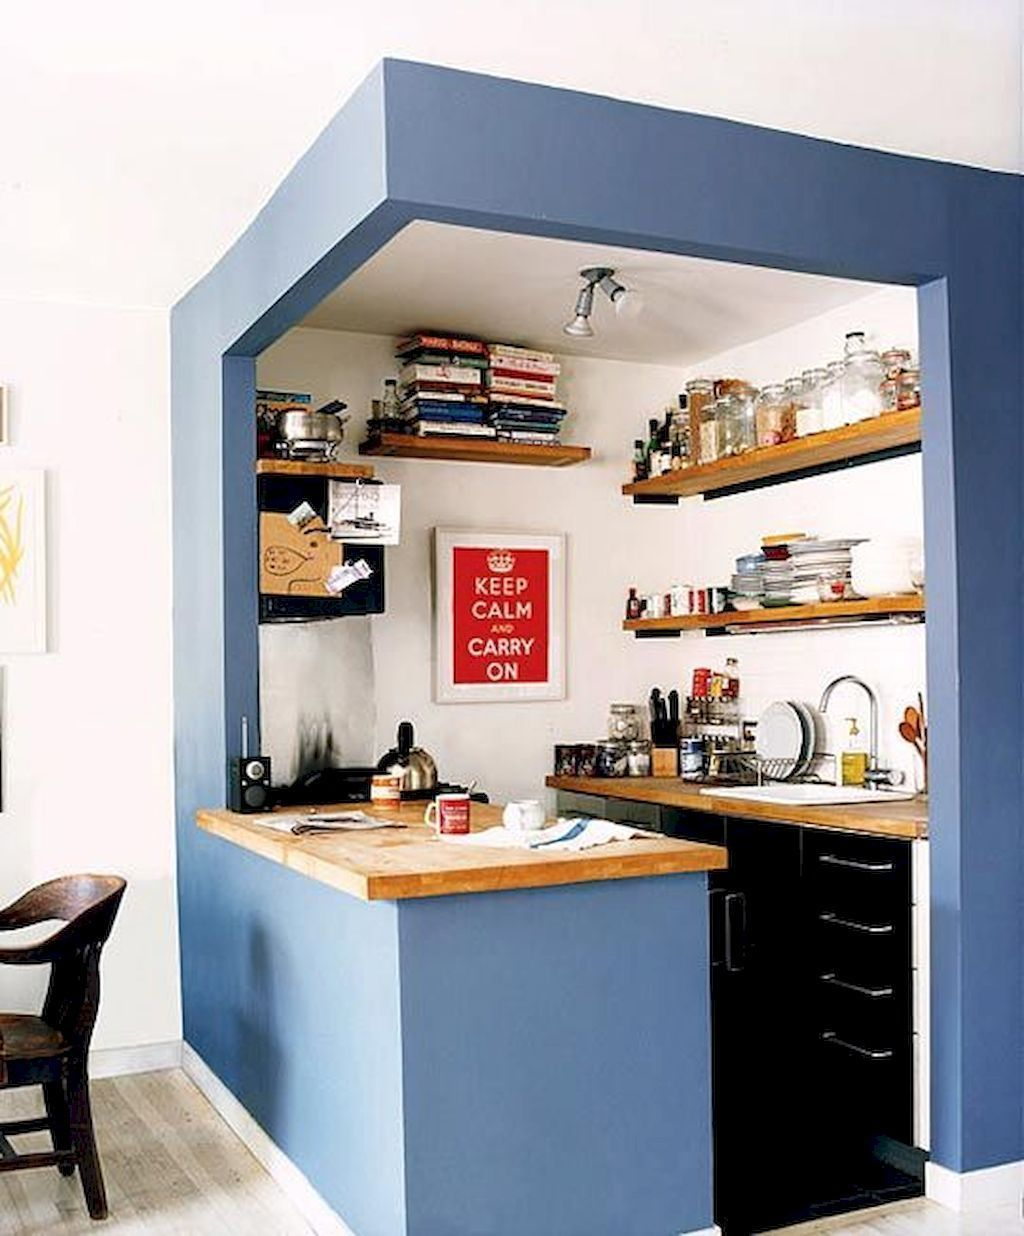 Explore Kitchen Shelves Ideas On Pinterest See More About Bar Small S Remodel Simple Design Tiny House